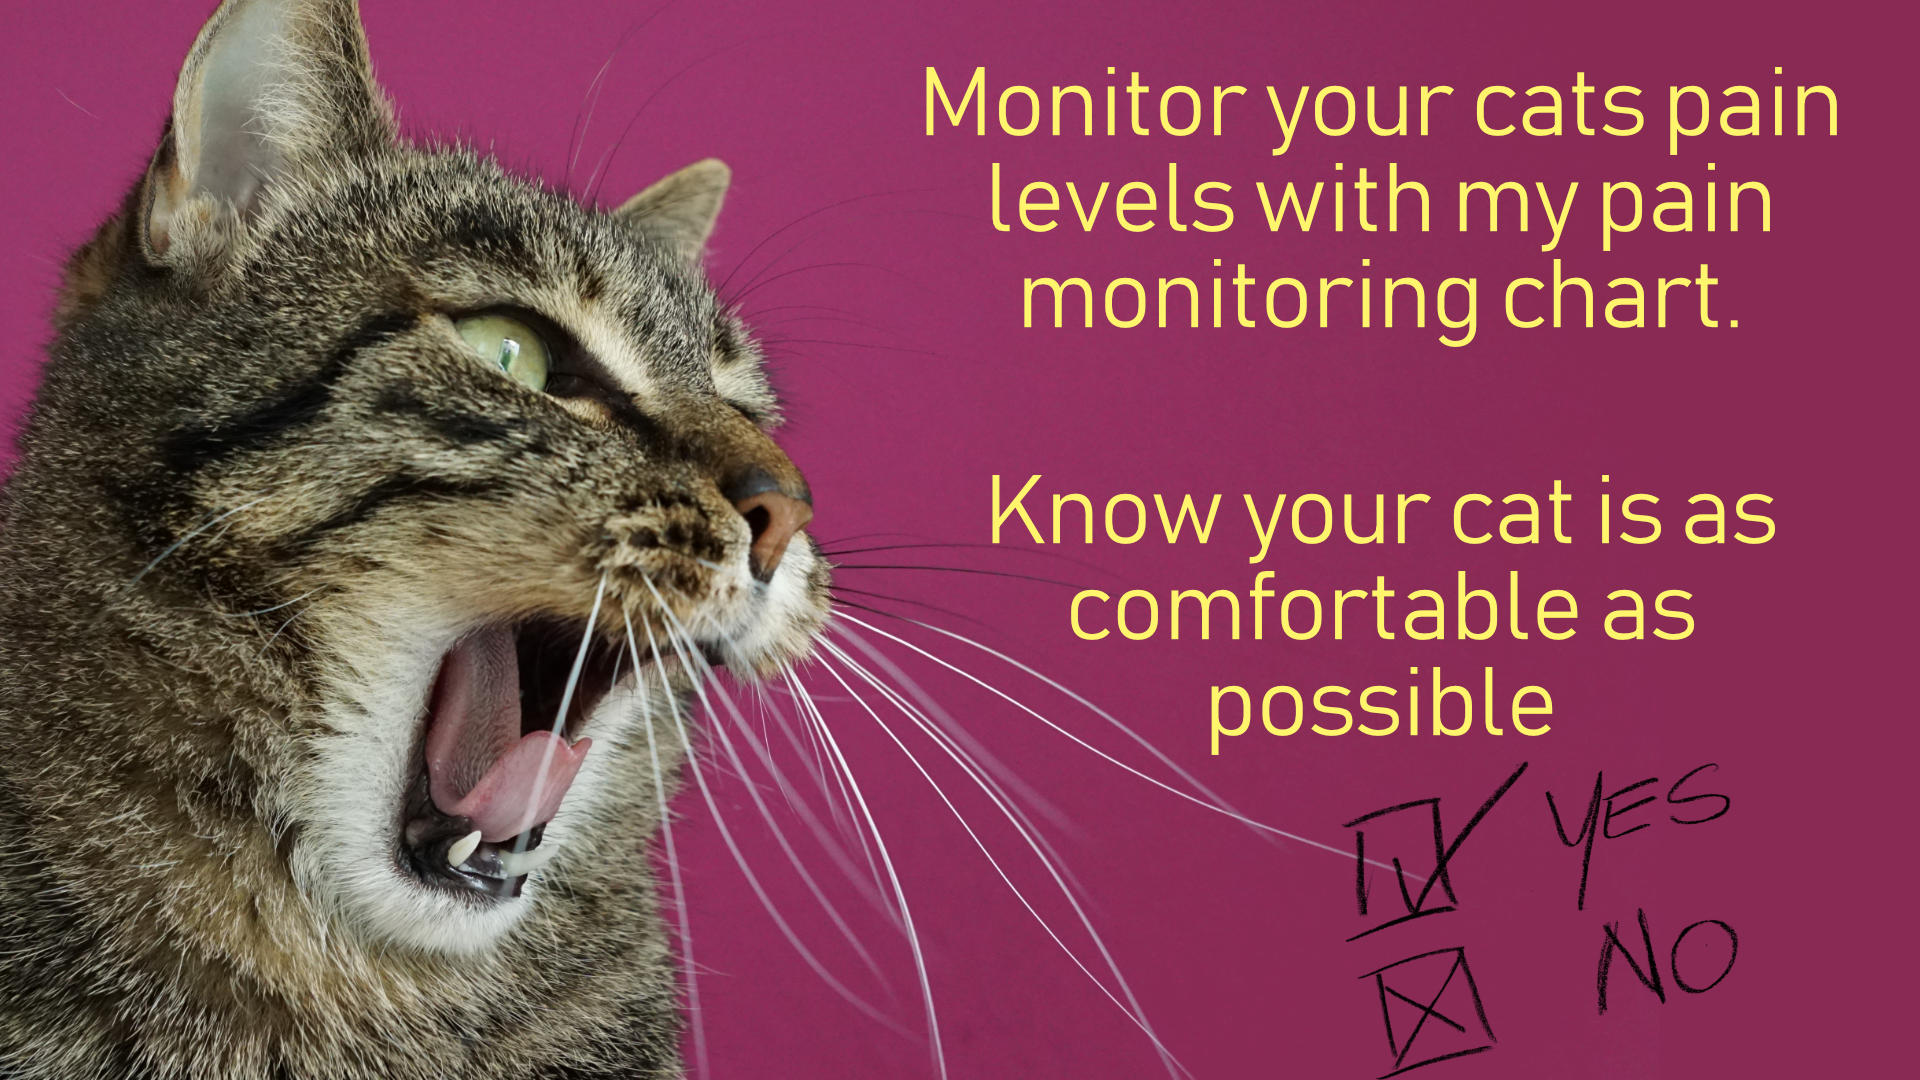 make sure your cat is not painful with my pain monitoring chart